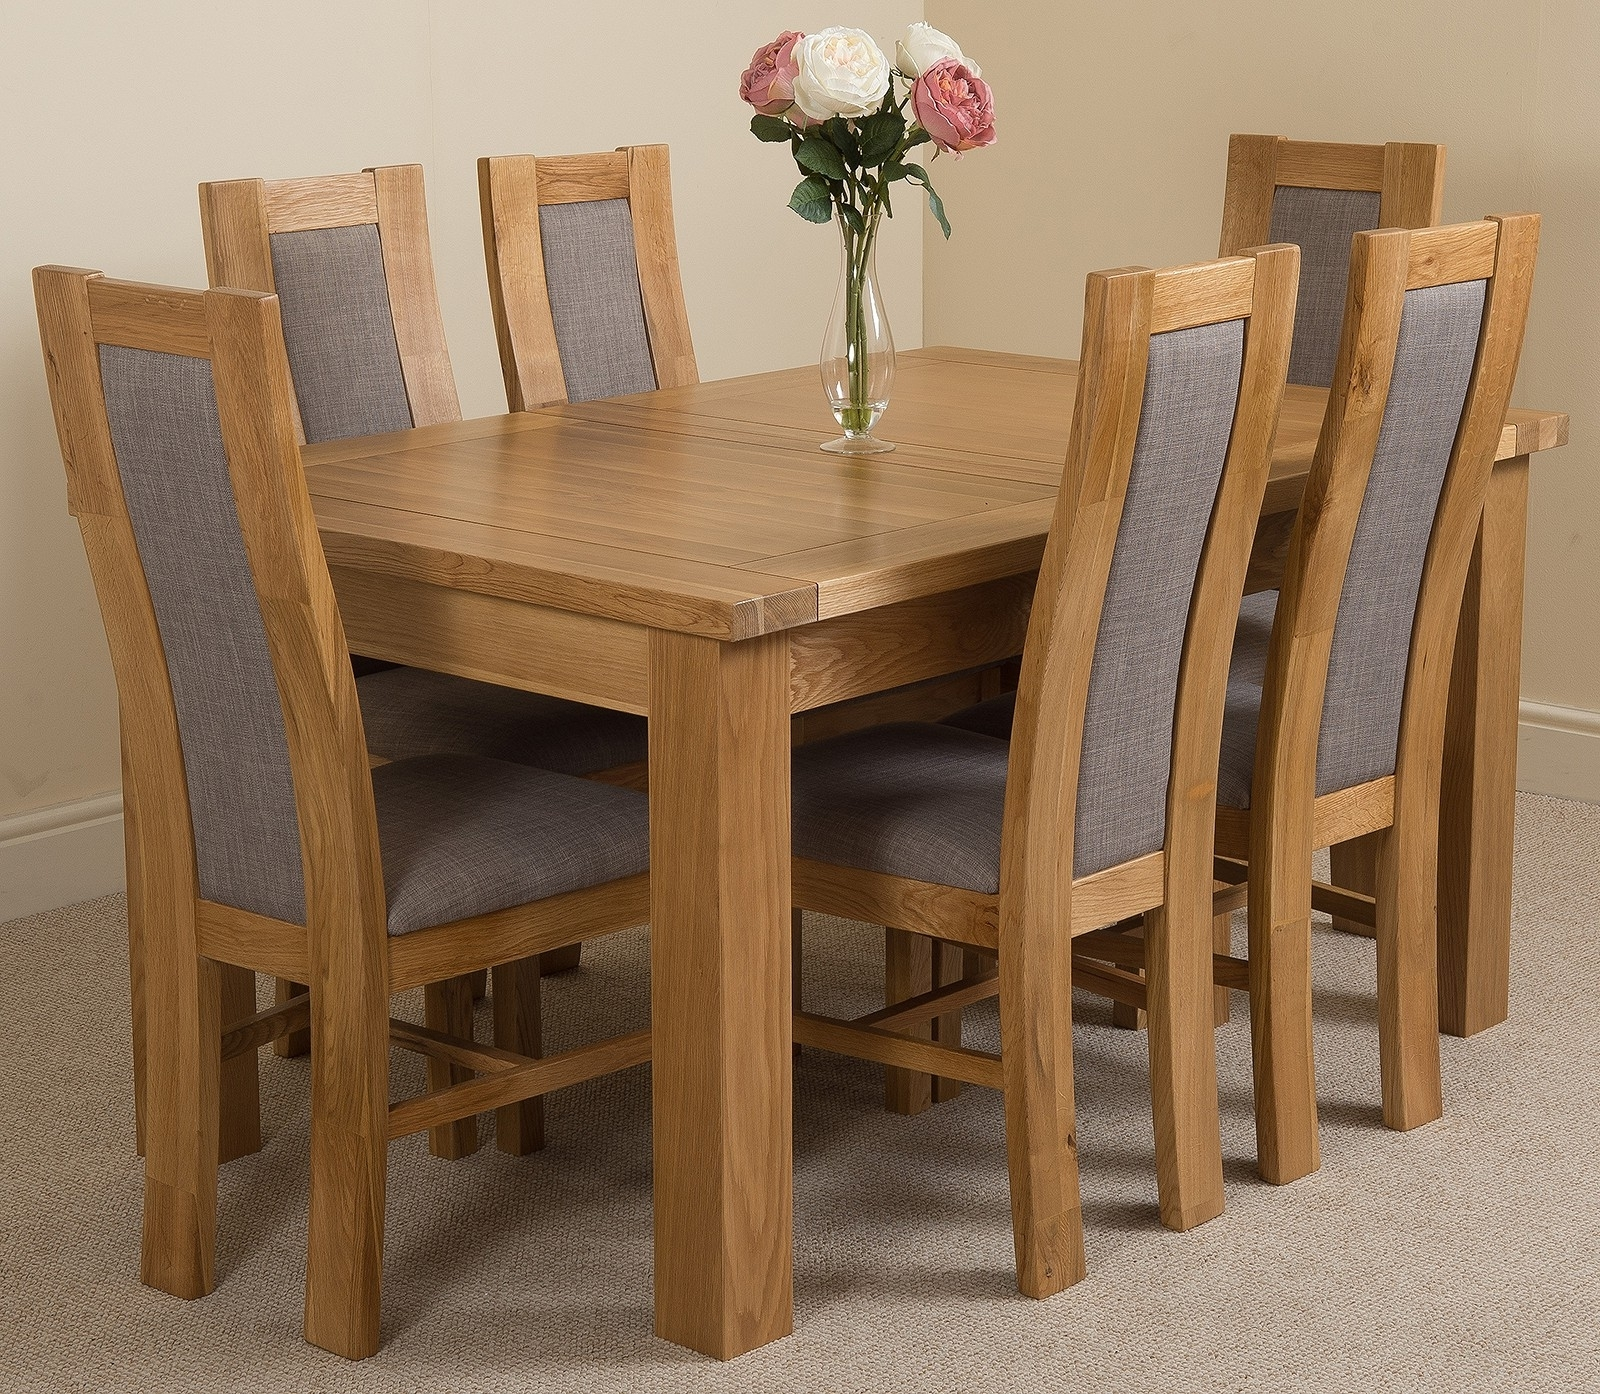 Oak Furniture King Pertaining To Oak Dining Tables (View 11 of 25)